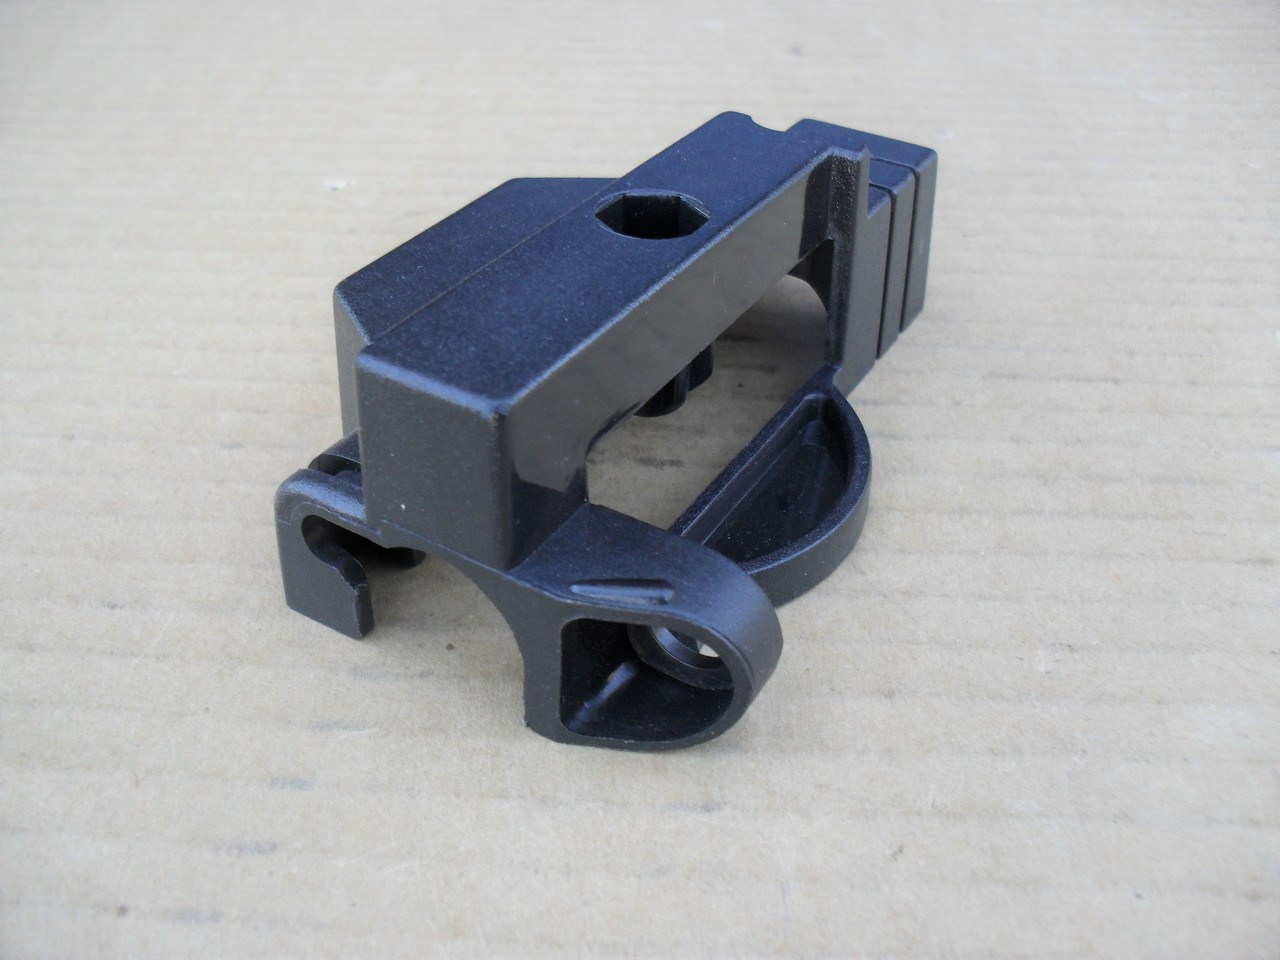 Cable Control Bracket Housing for MTD 746-0883, 746-0875 lawn mower, snowthrower, snowblower, snow blower thrower